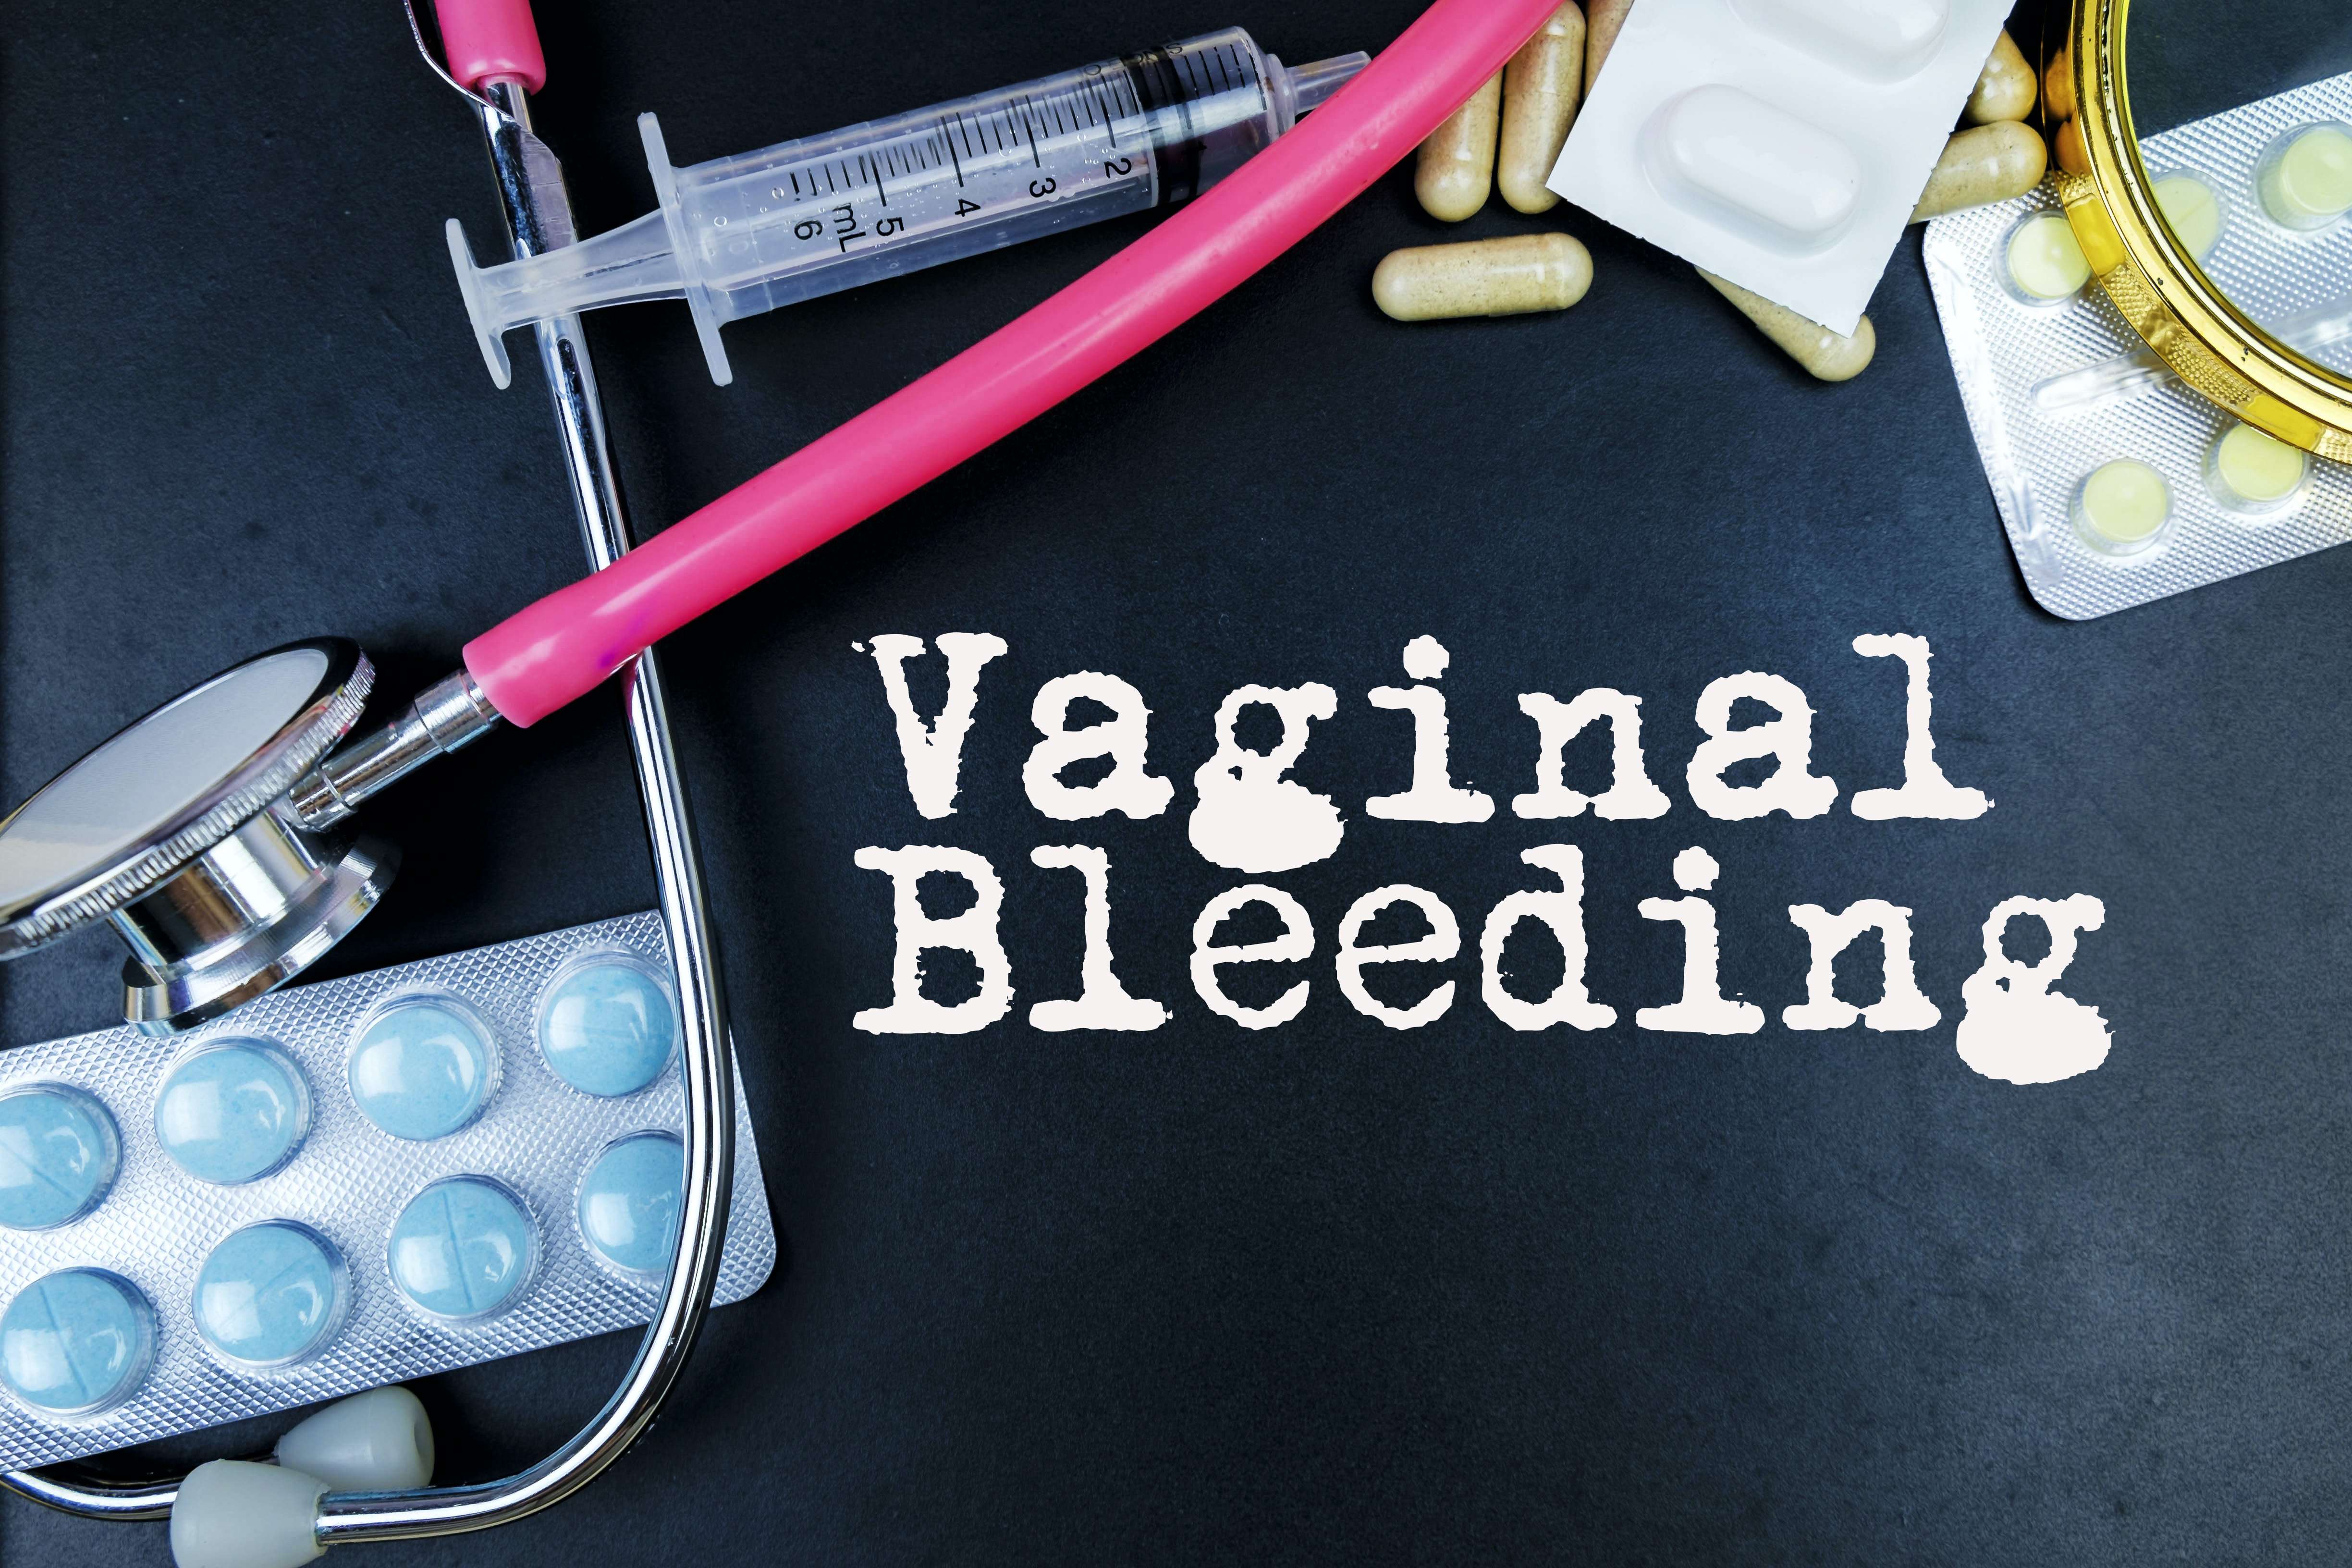 An image depicting a person suffering from vaginal bleeding symptoms